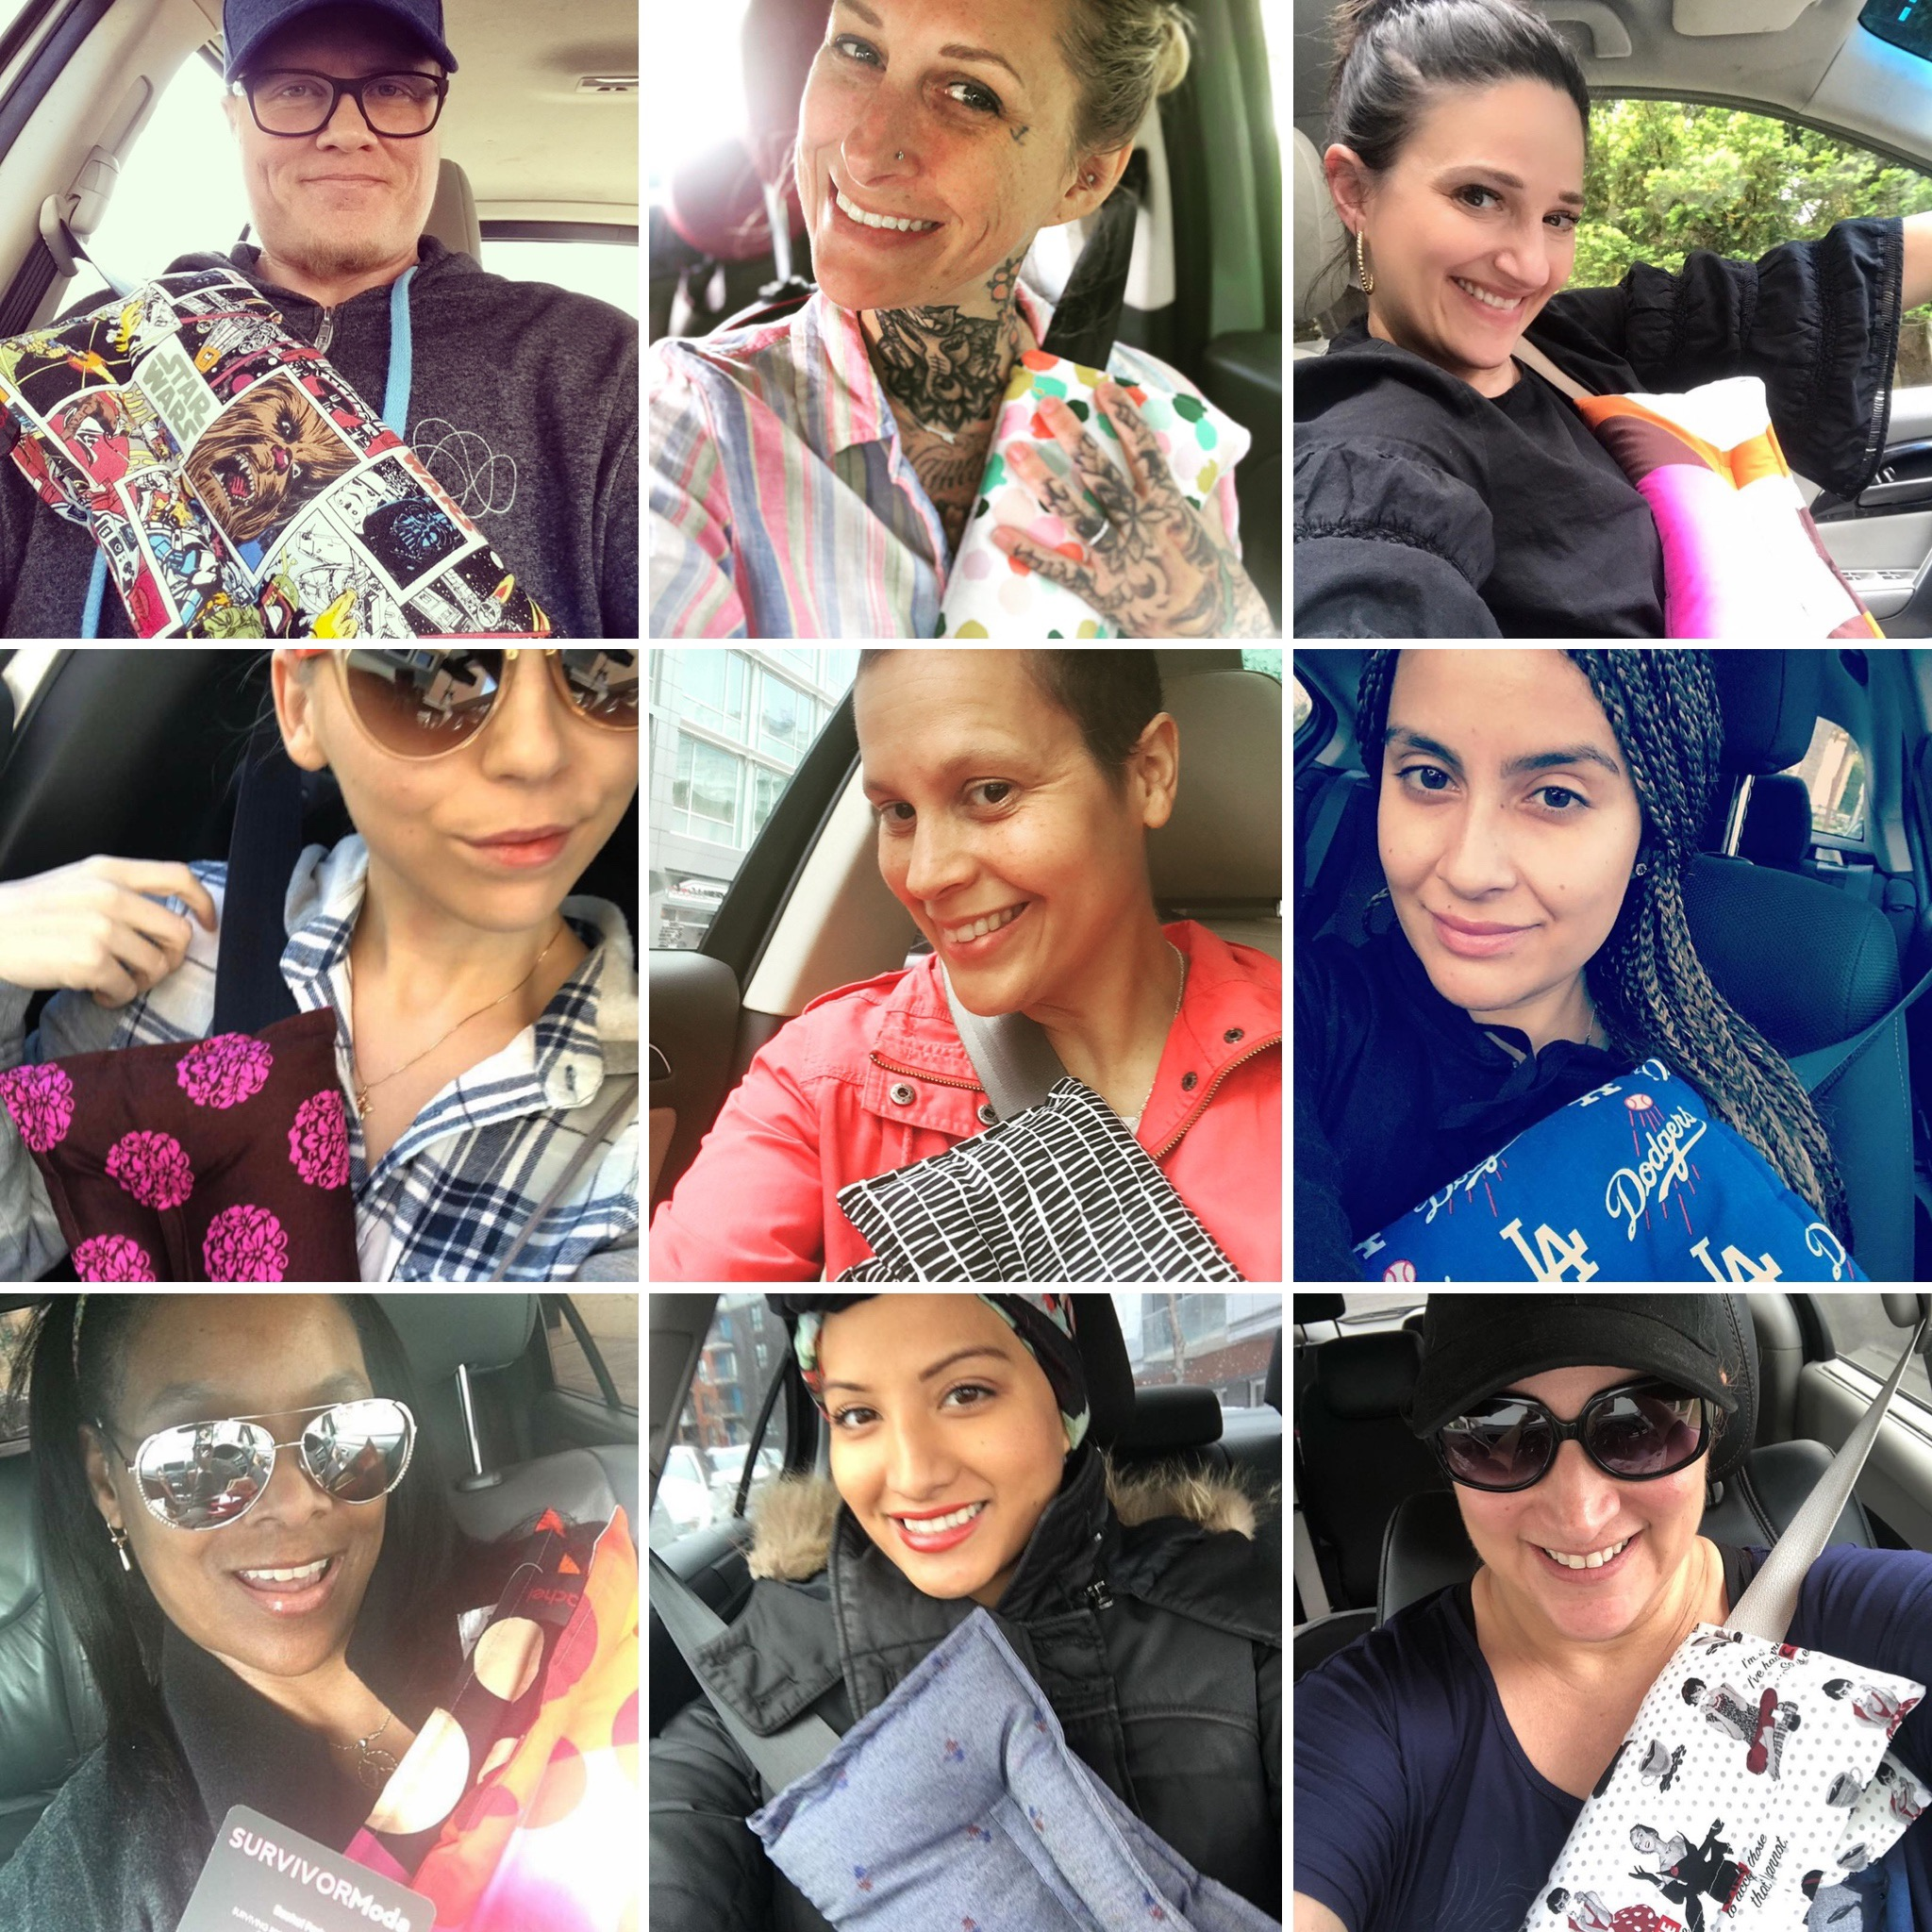 Thank You! - To all of these beautiful patients who shared their #ParkPufflove, we appreciate you!